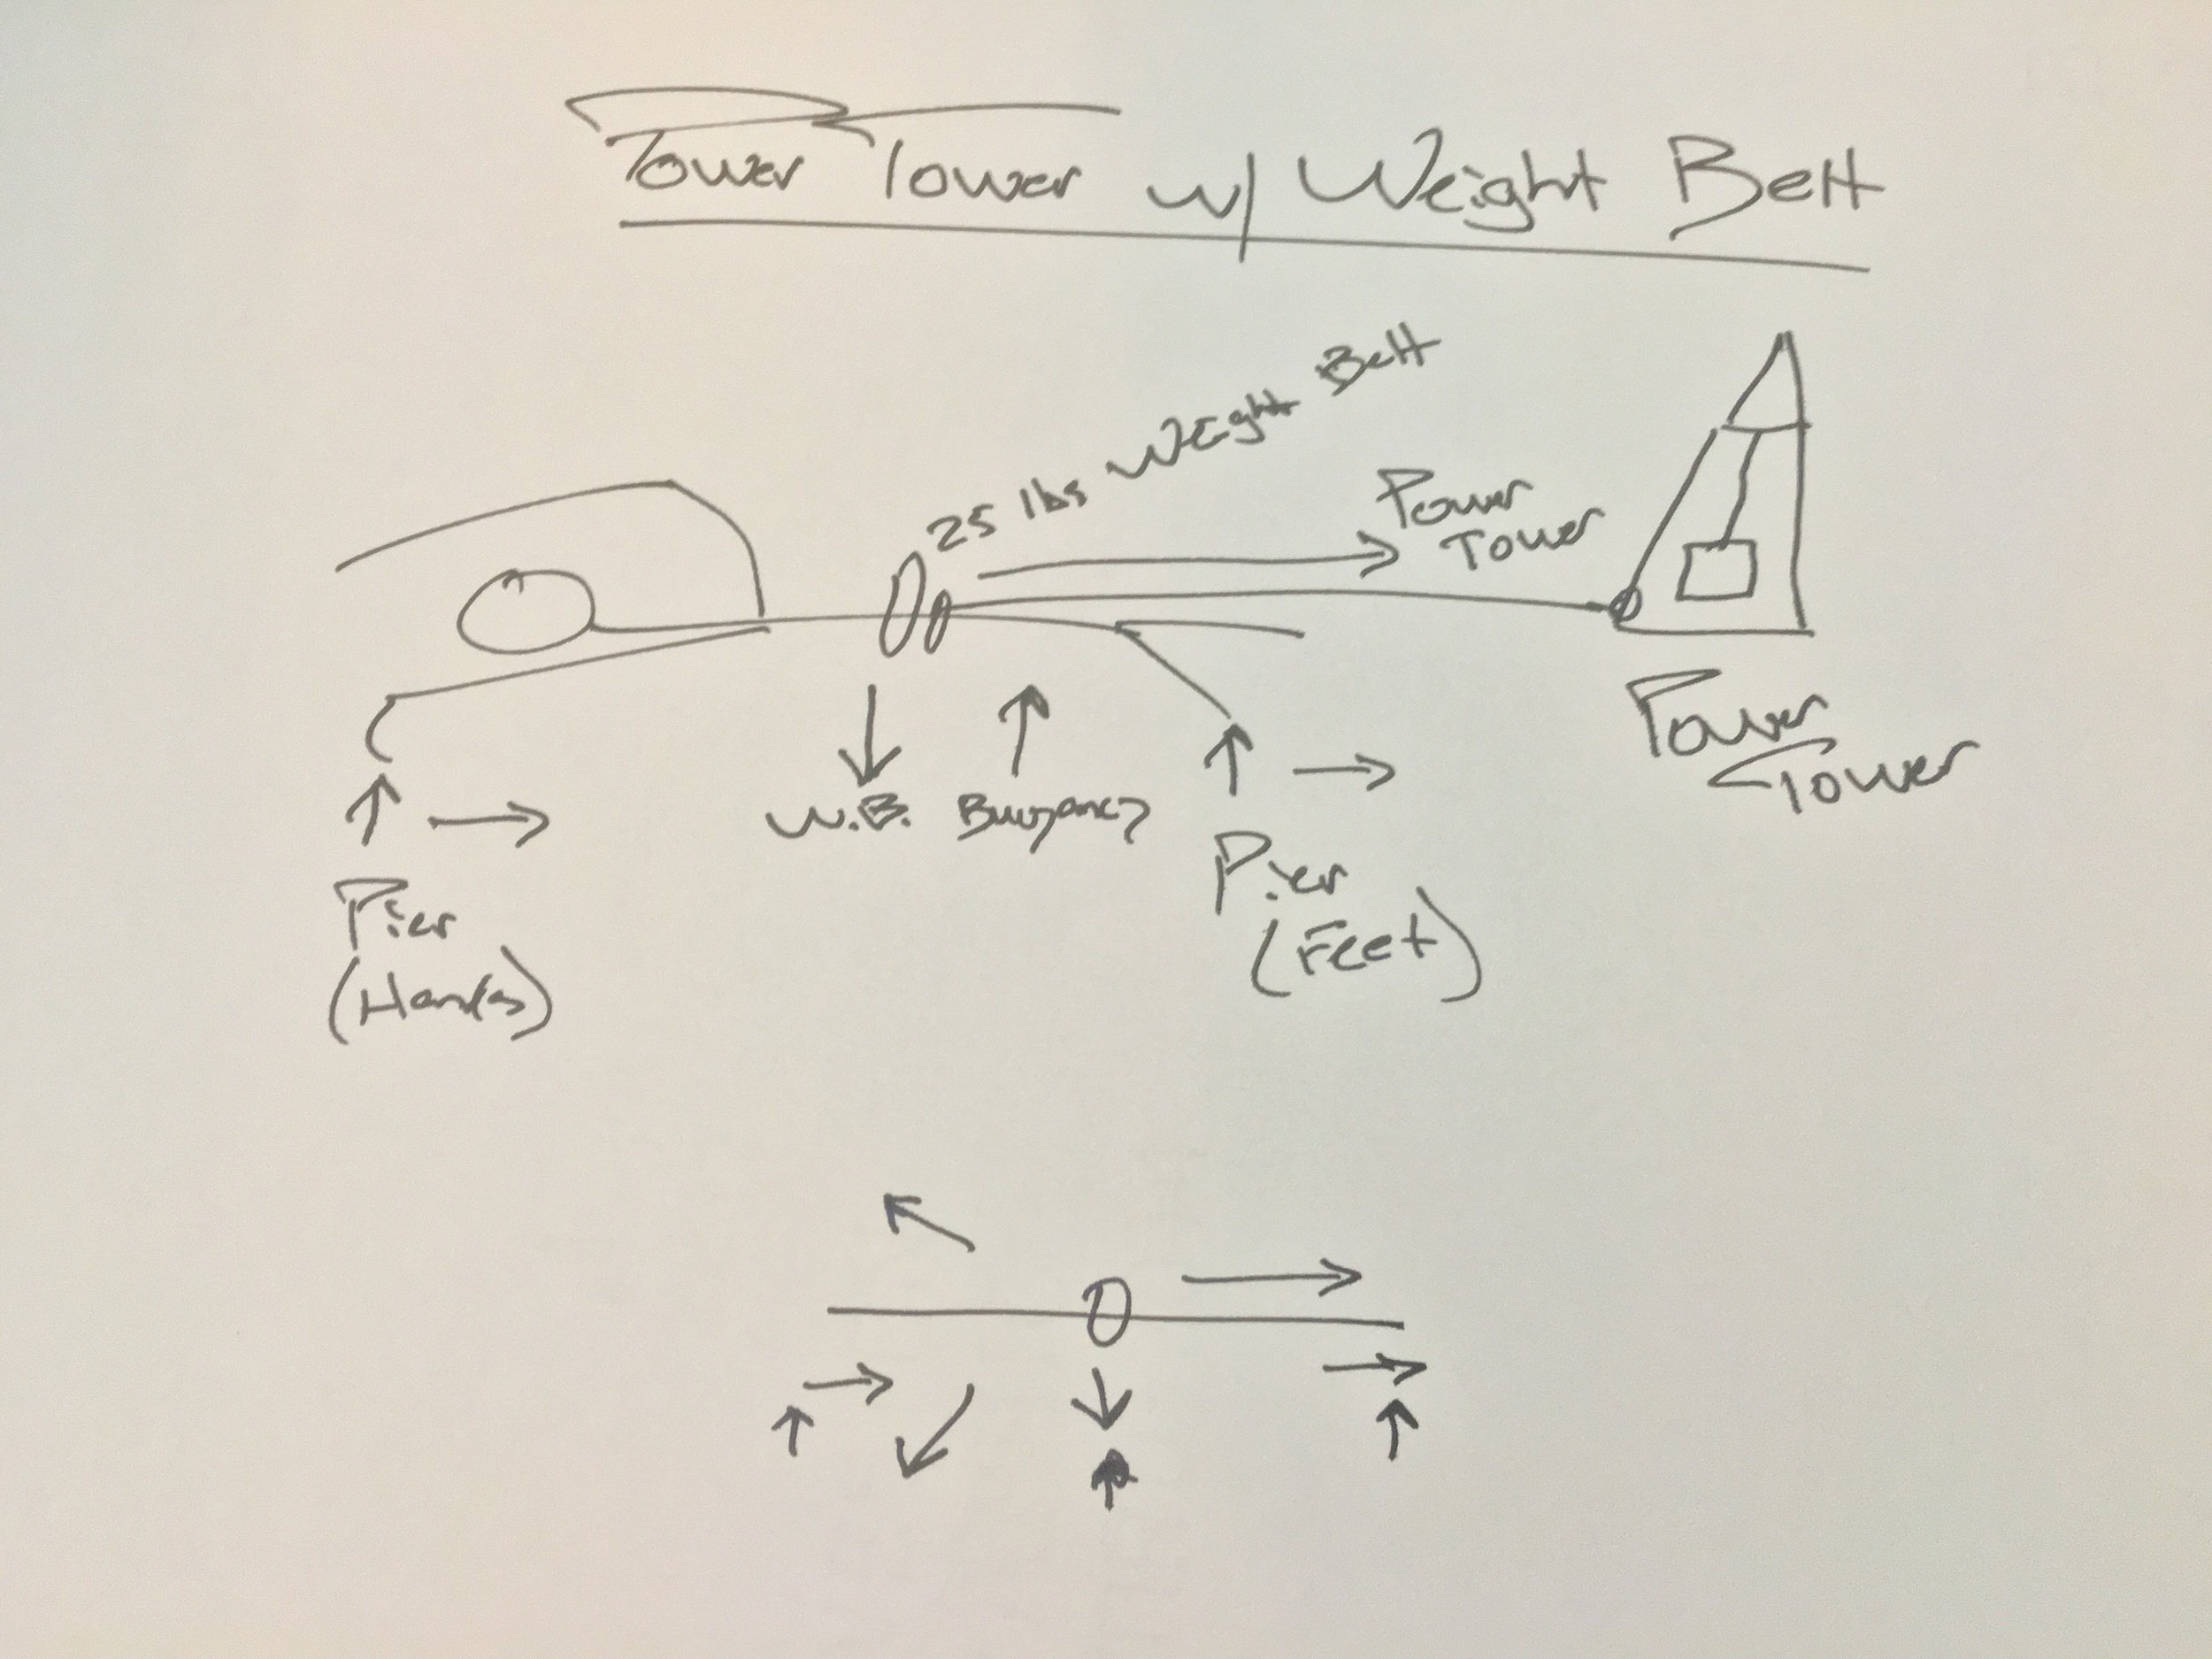 Above: A weight belt with a Power Tower presents quite the challenge for those coaches with a mind for physics. There are many forces that act upon the body when it moves through water with these loads. Note: The arrows from the piers represent both a lift and drag propulsive force. I did not include the frontal drag force of the body moving through the water, the drag force exerted by the flow of the water past the body, nor the surface drag created by the body and so forth. There are already too many arrows to think about!